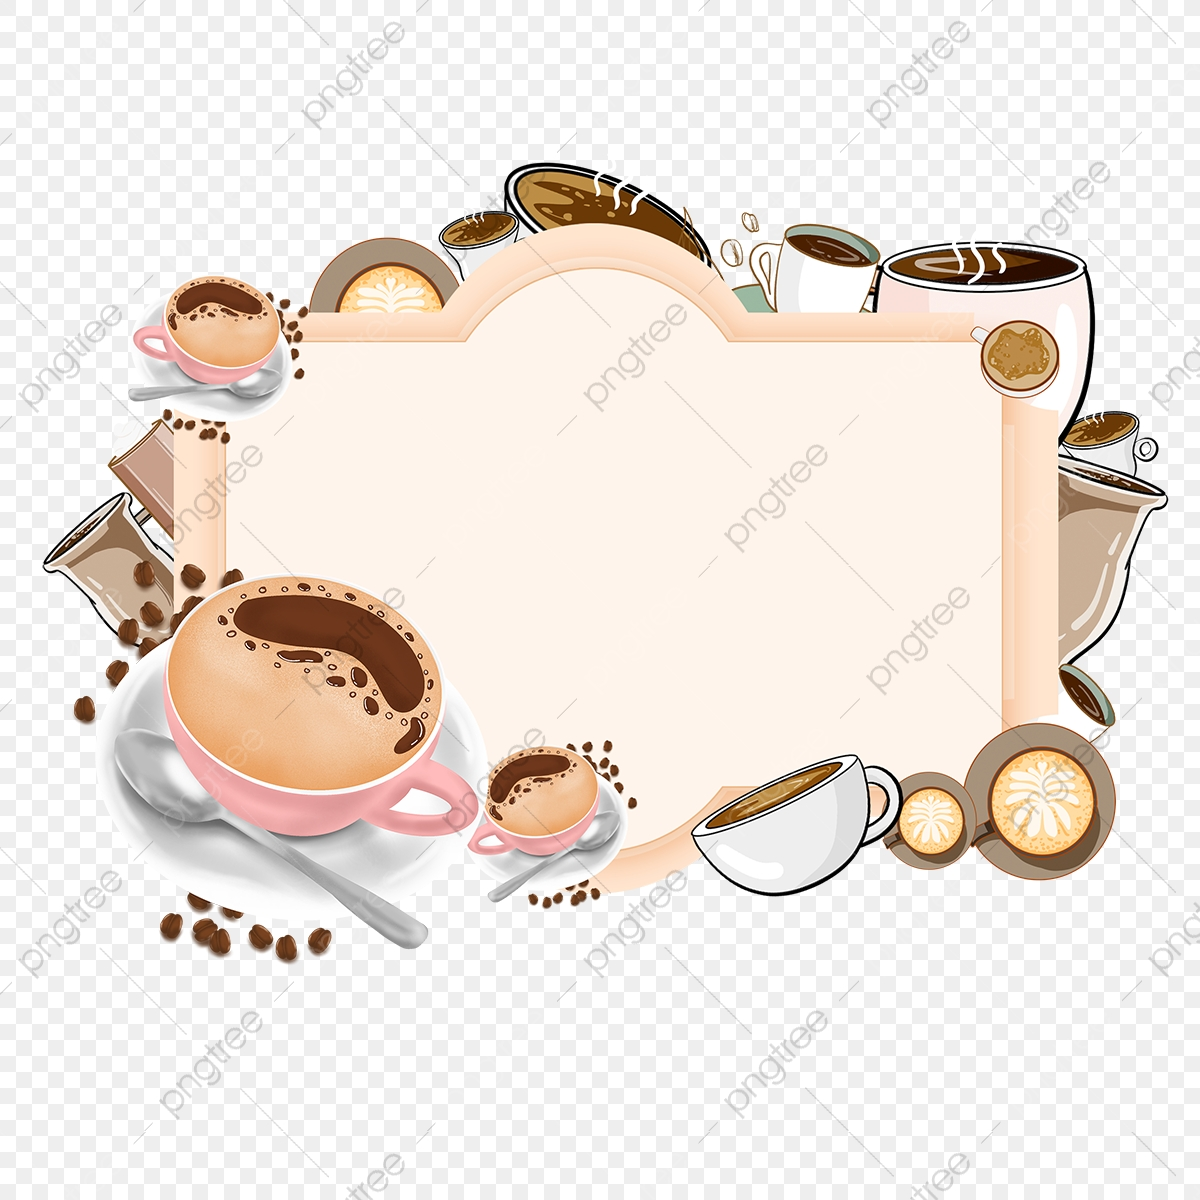 Coffee Borders Png Images Vector And Psd Files Free Download On Pngtree